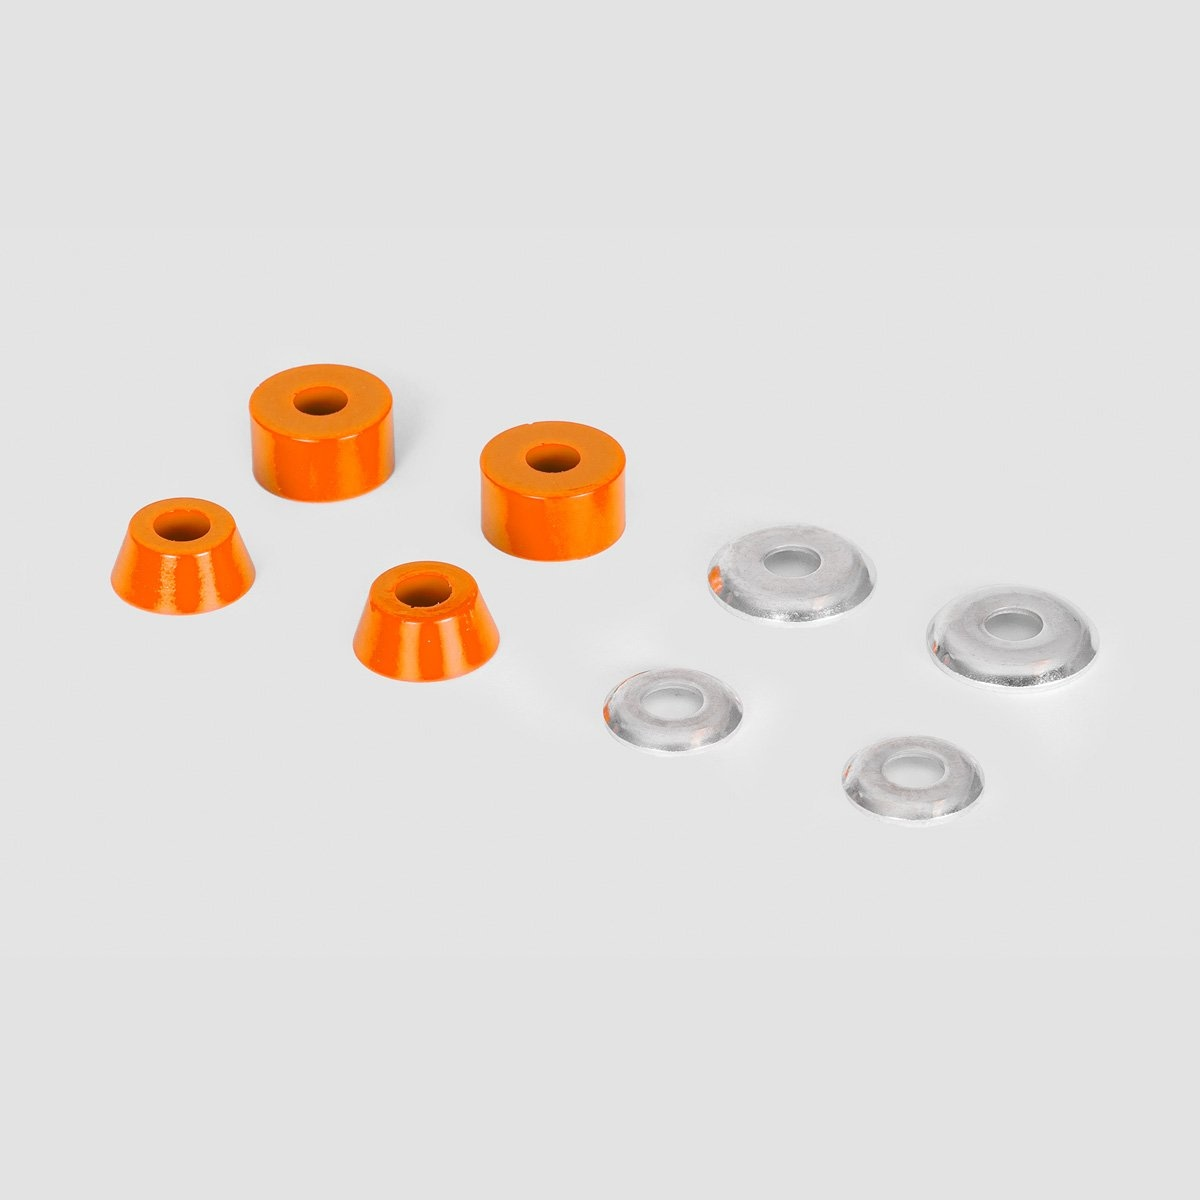 Independent Standard Cylinder Medium 90a Bushings Orange - Skateboard